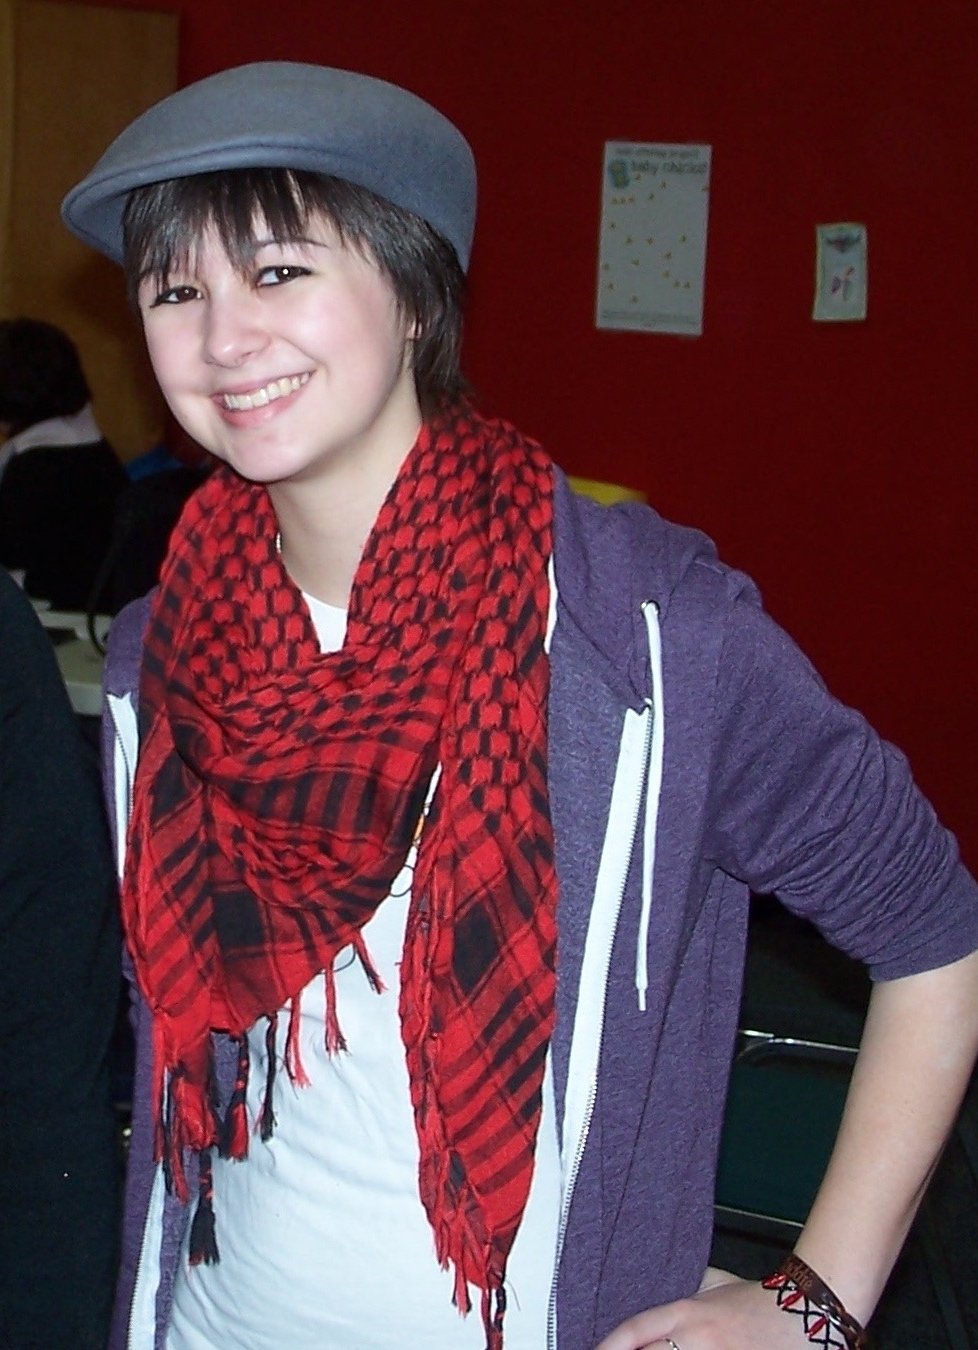 Borrowing my fashion choices from  Fall Out Boy 's Patrick Stump, 2010.